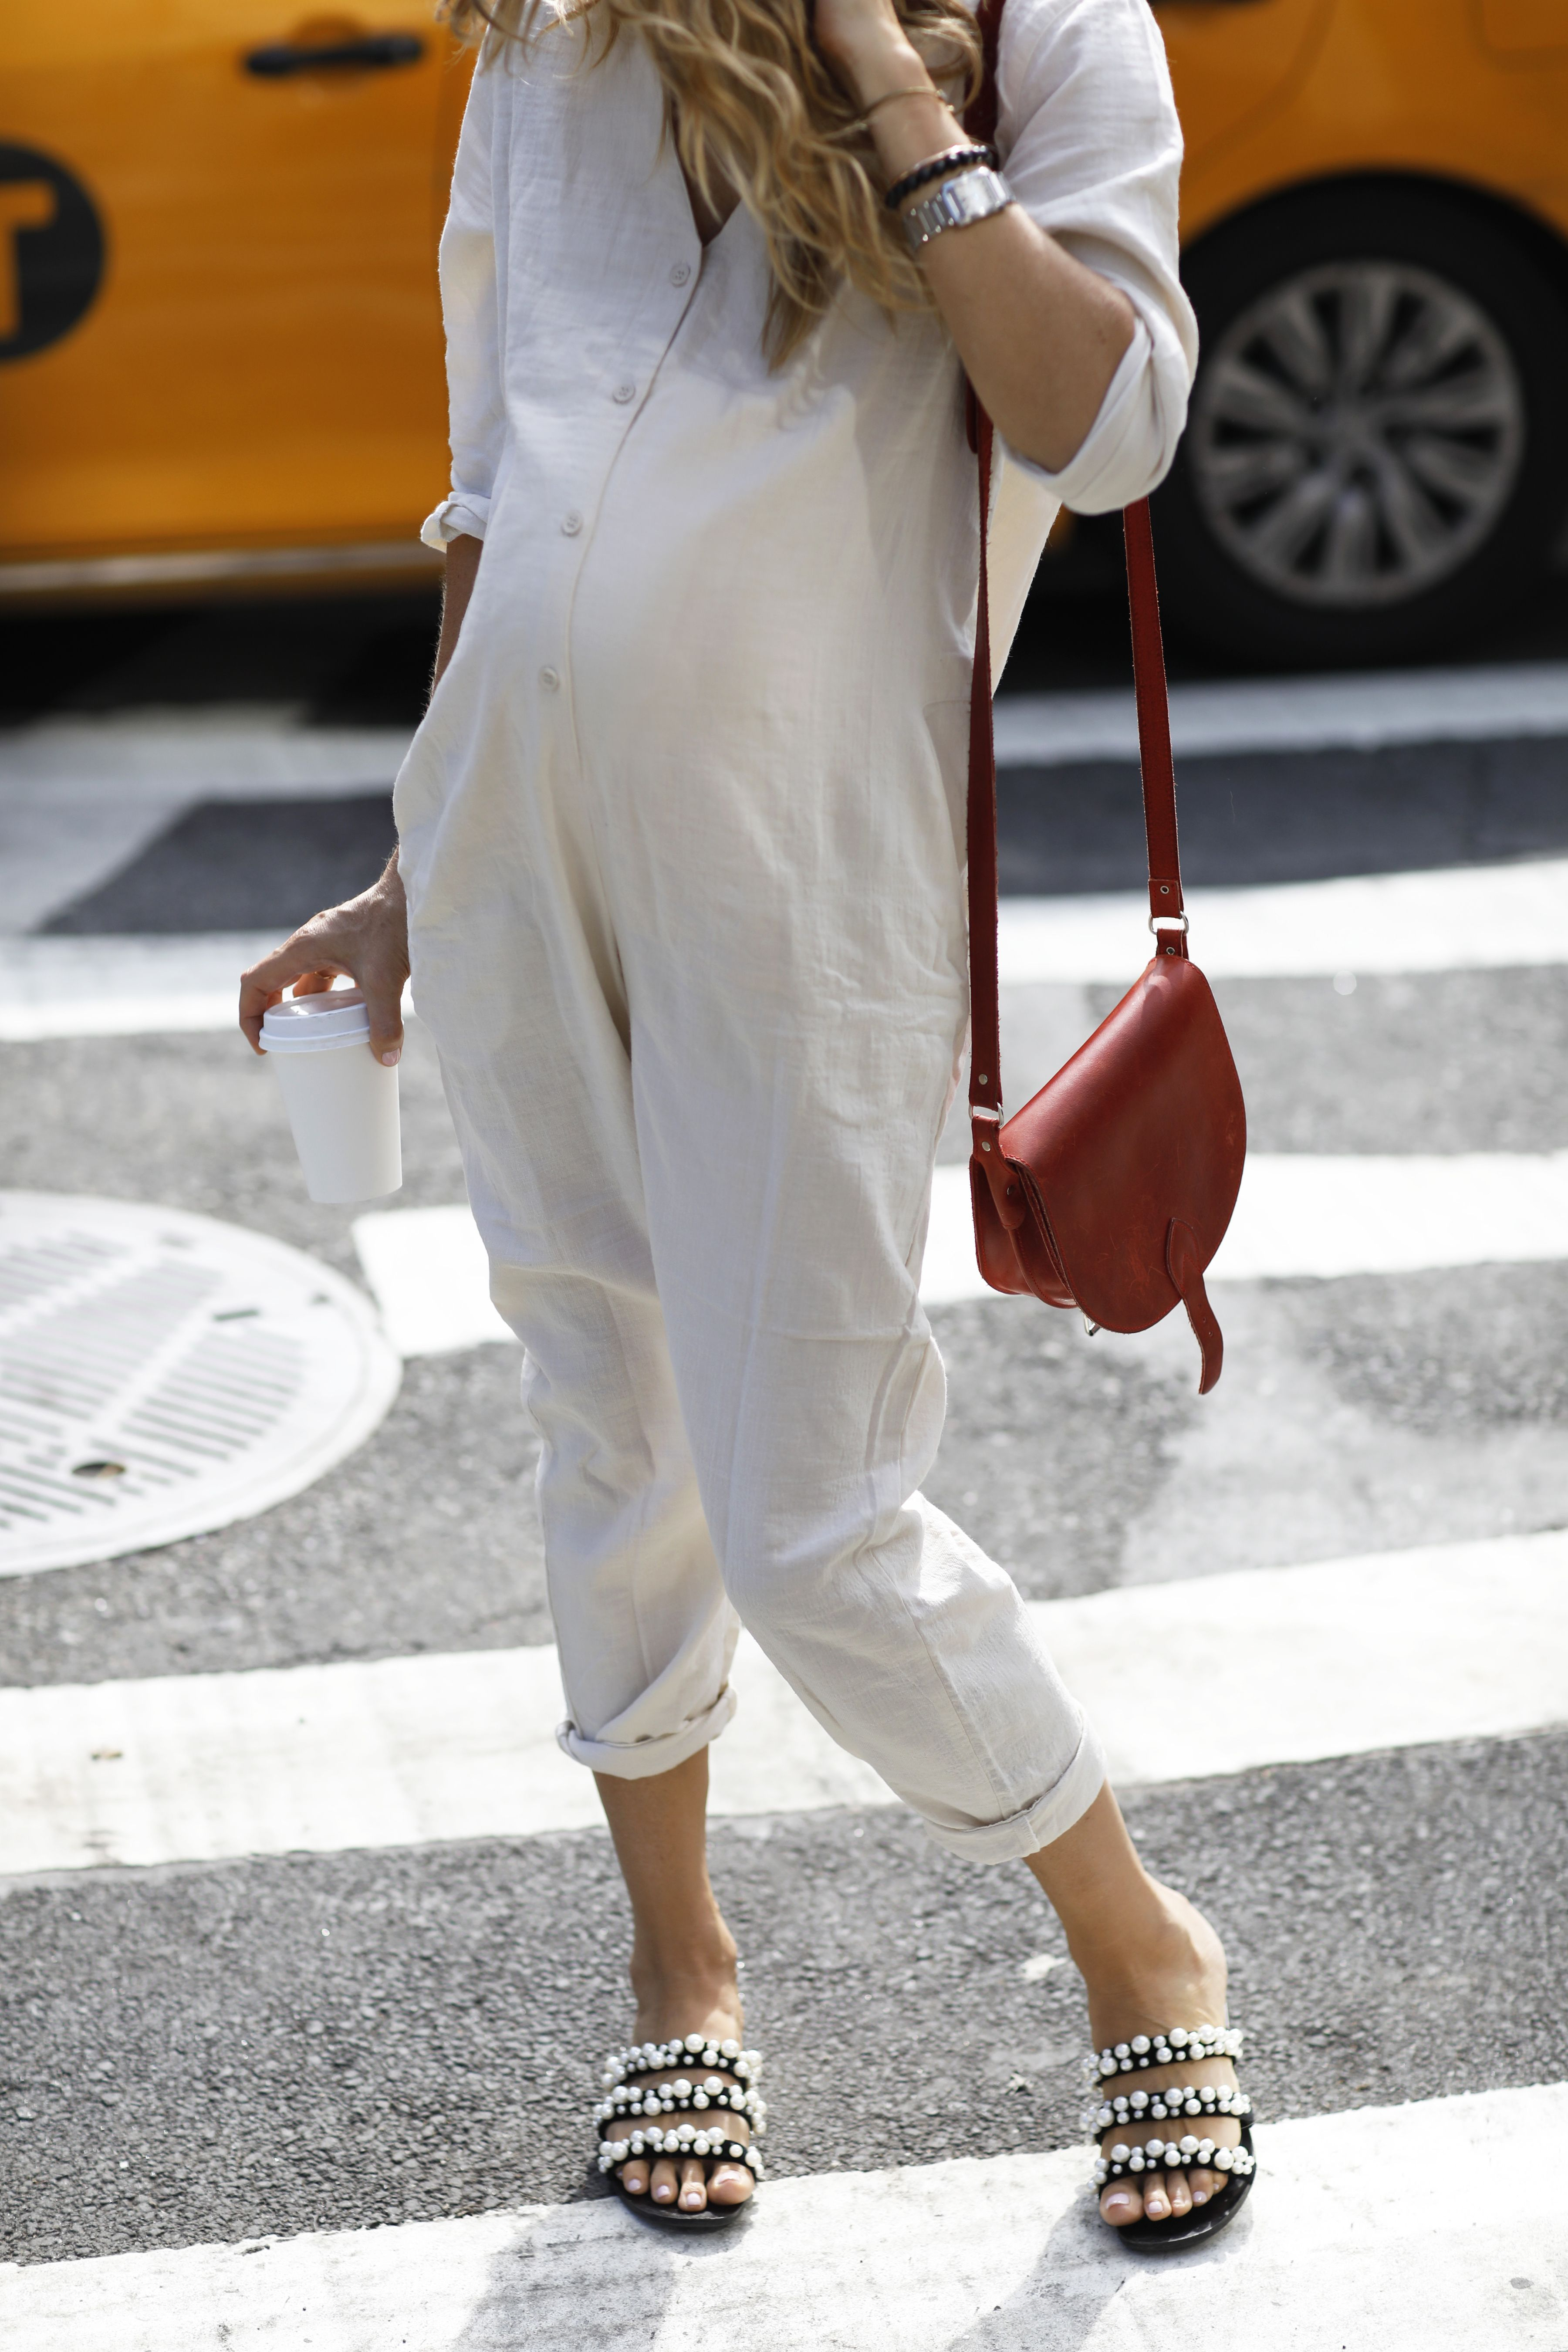 The Taylor Jumper Hatchtagged Maternity Clothes Stylish Women Fashion Maternity Jumpsuit